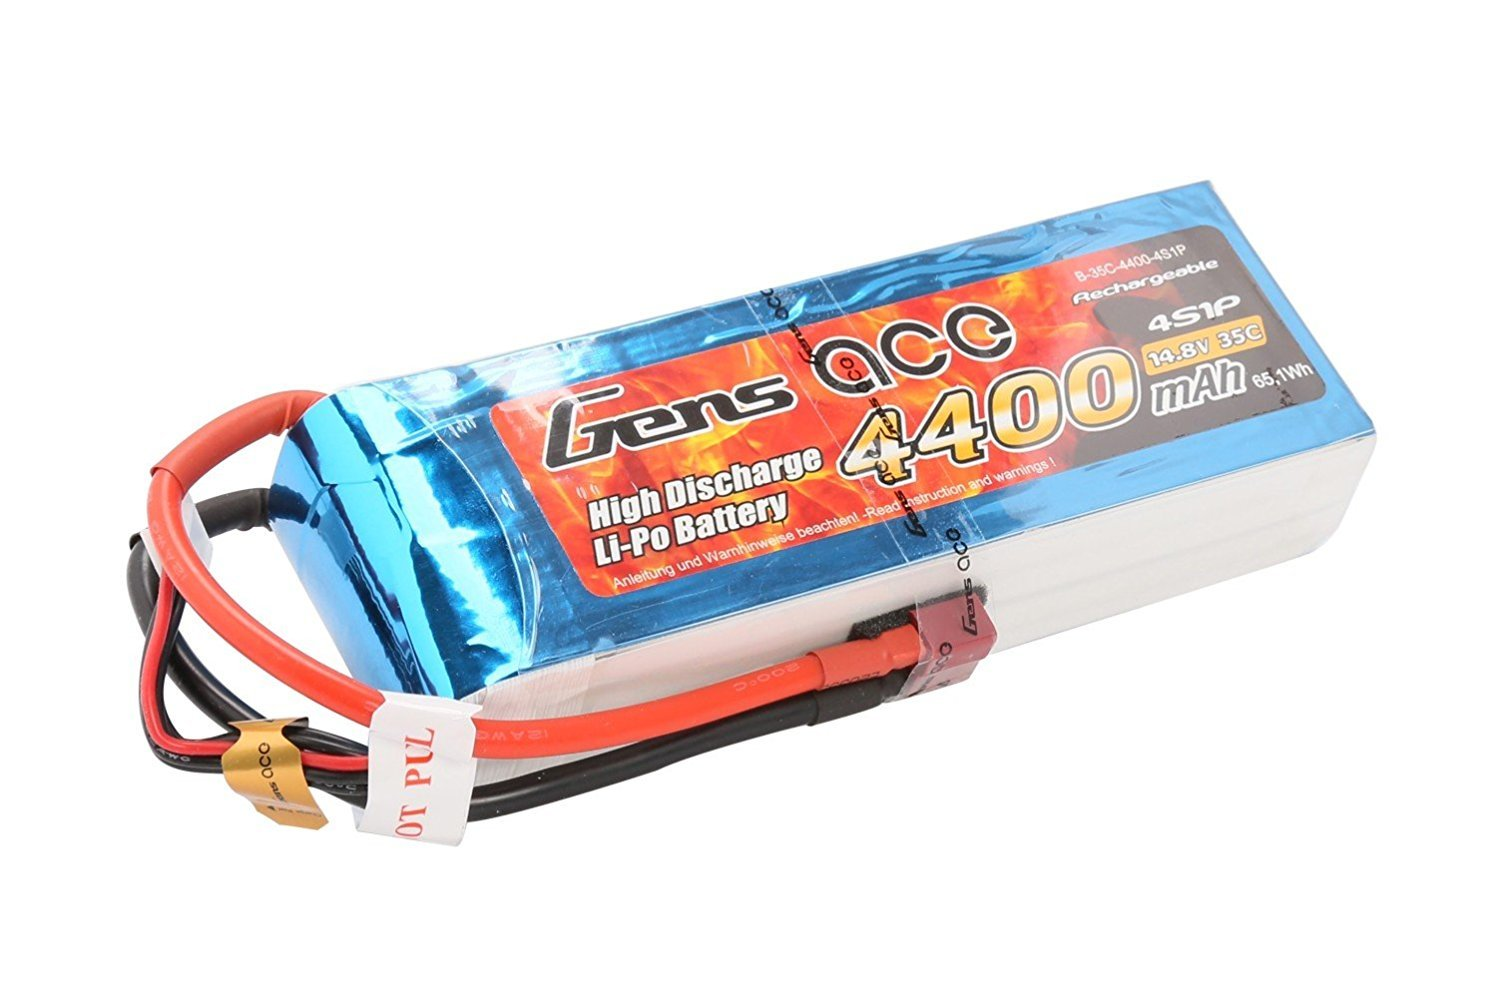 Gens ace 4400 mAh 14.8 V 35 °C Model 4S1P Lipo Battery Pack with Deans T Plug for RC Car Helicopter Plane Boat Truck FPV Helicopter Airplane Toys